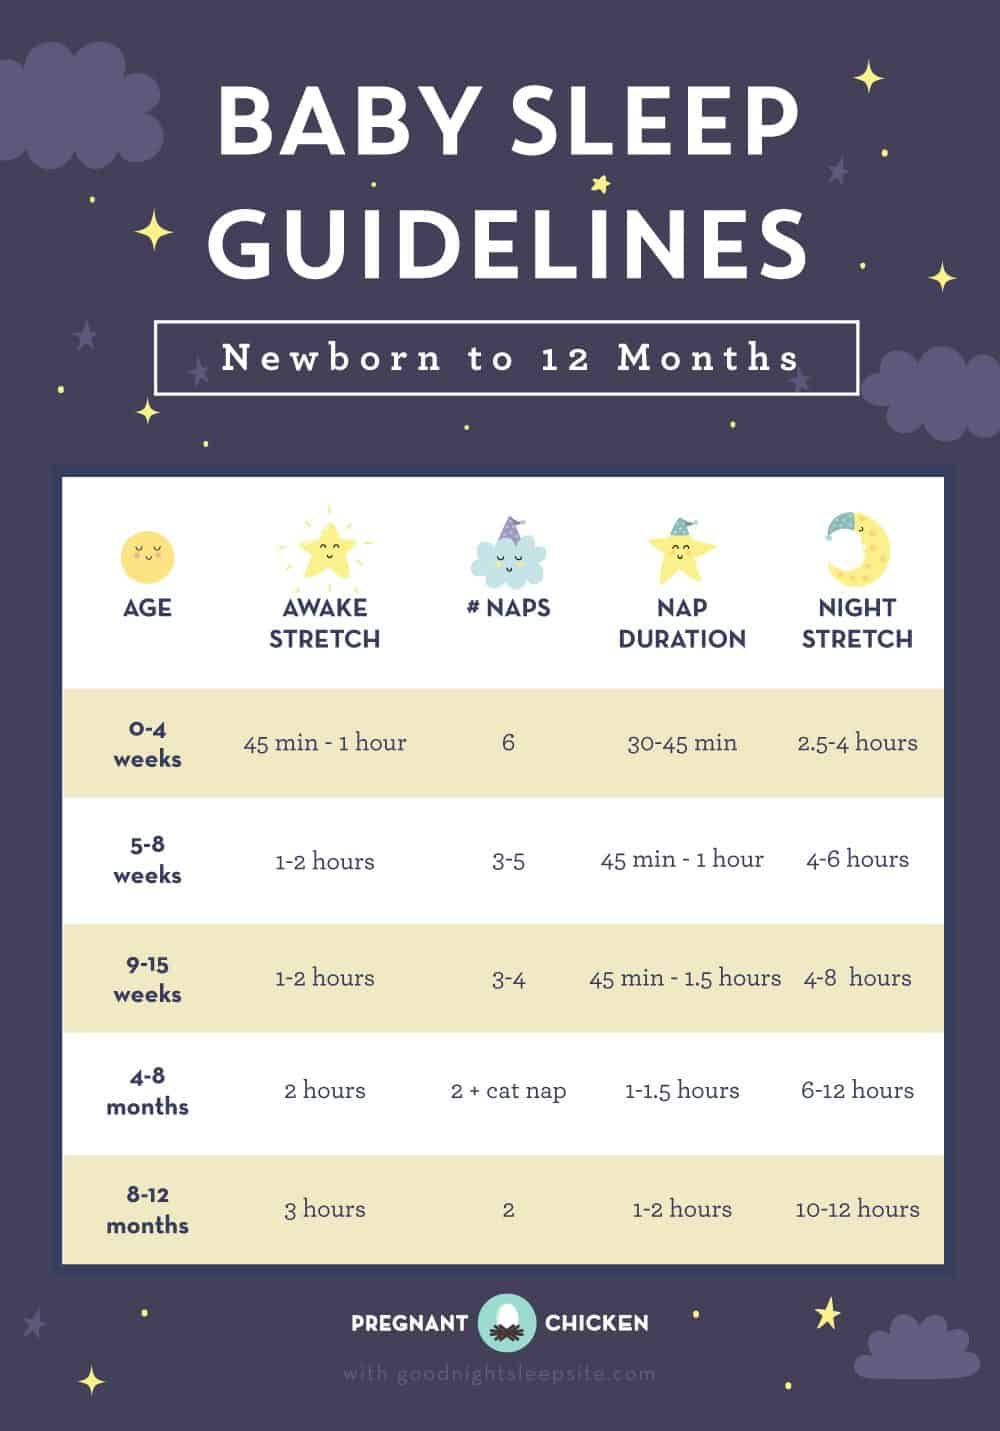 sleep guidelines 1-12 months